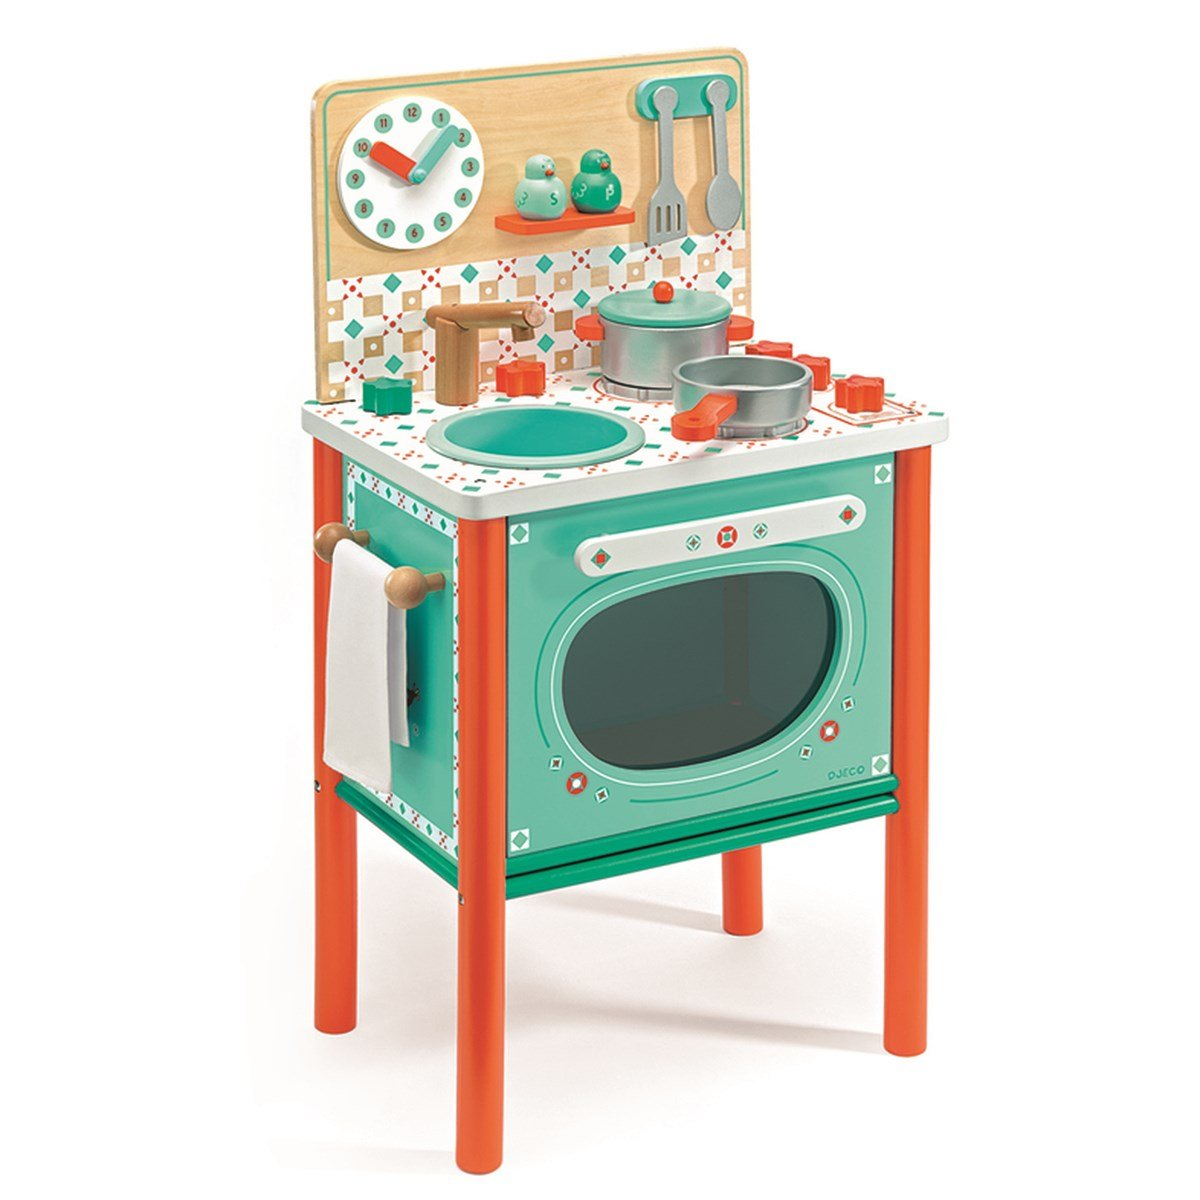 Djeco - Leo's Cooker Play Kitchen - Babyshop.com